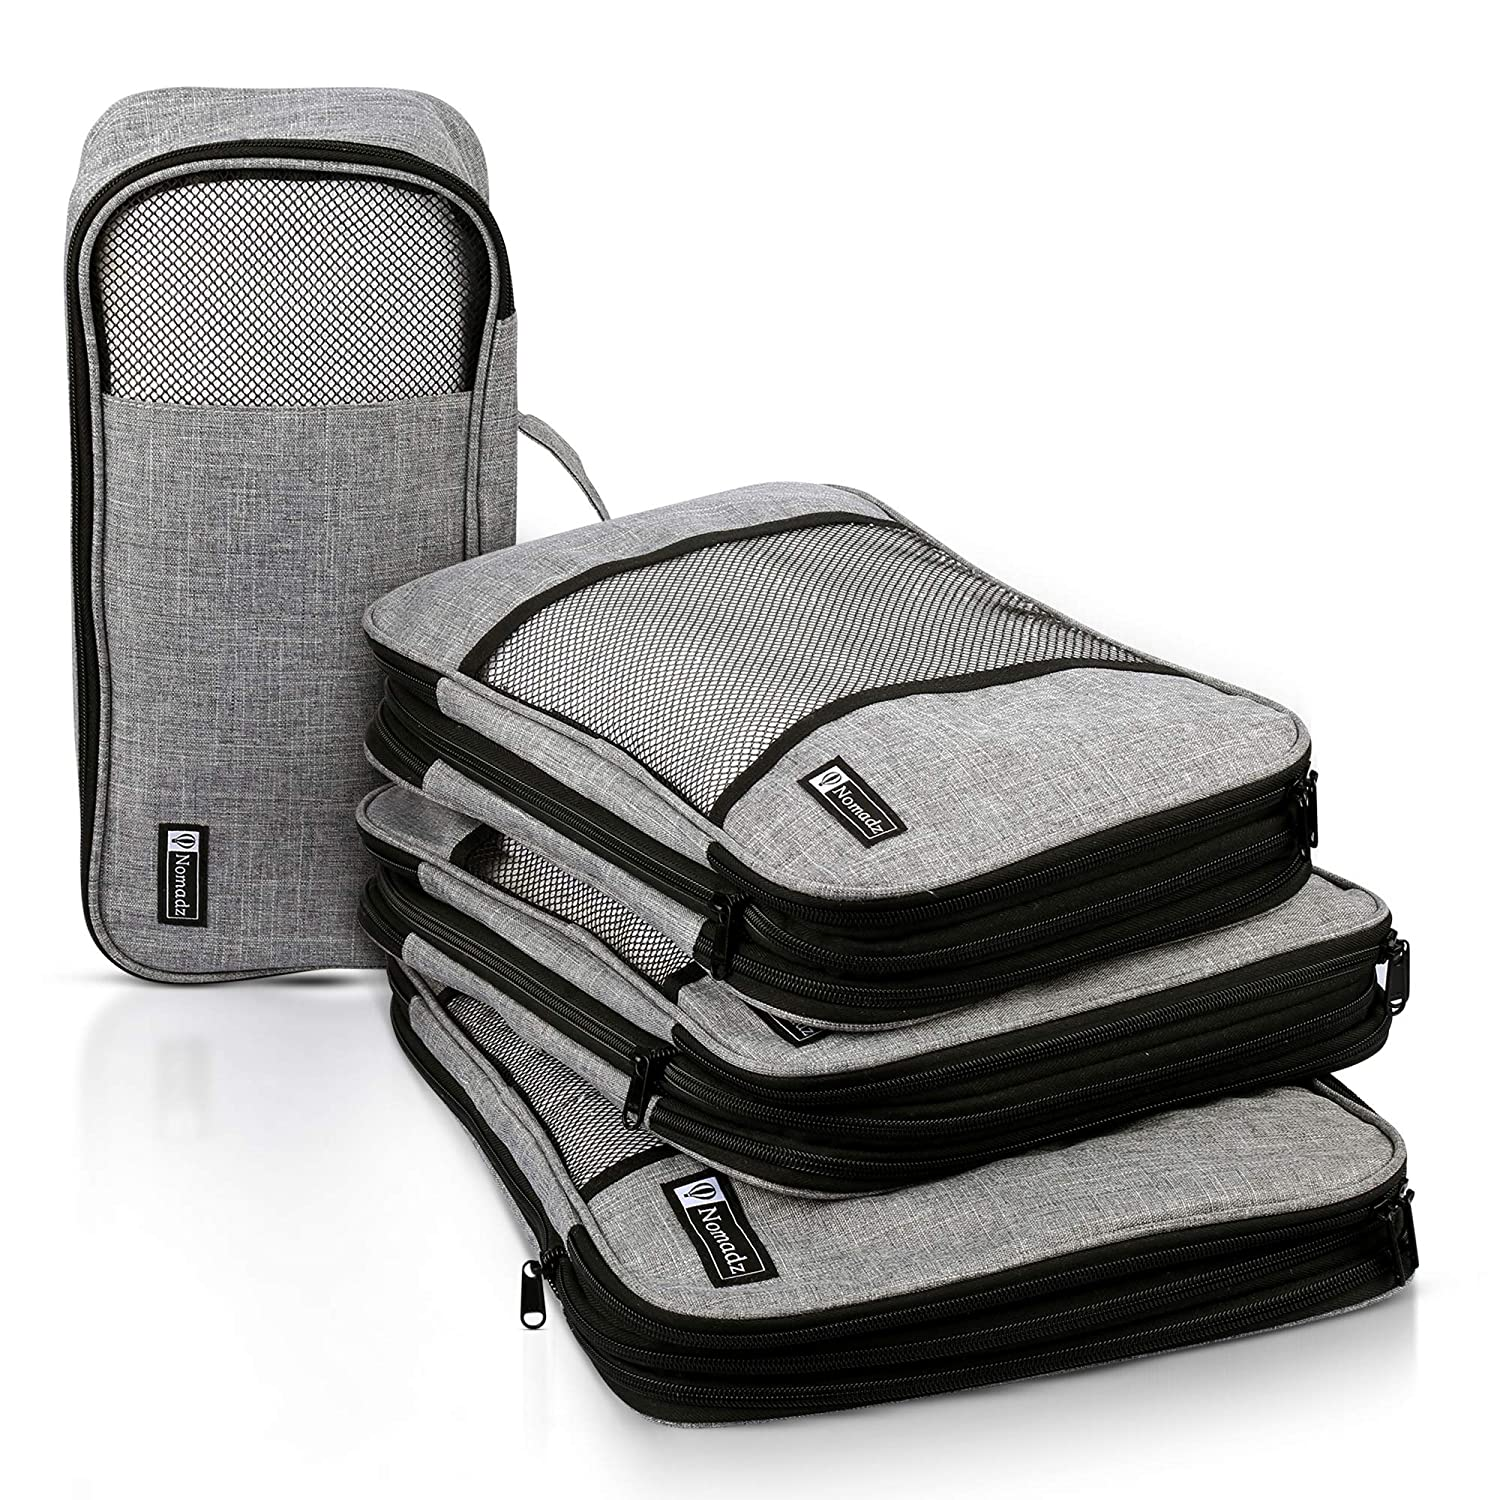 a31fc4d327e9 Compression Packing Cubes Travel Luggage-Organizer Set Packs More in Less  Space (Double Sided)